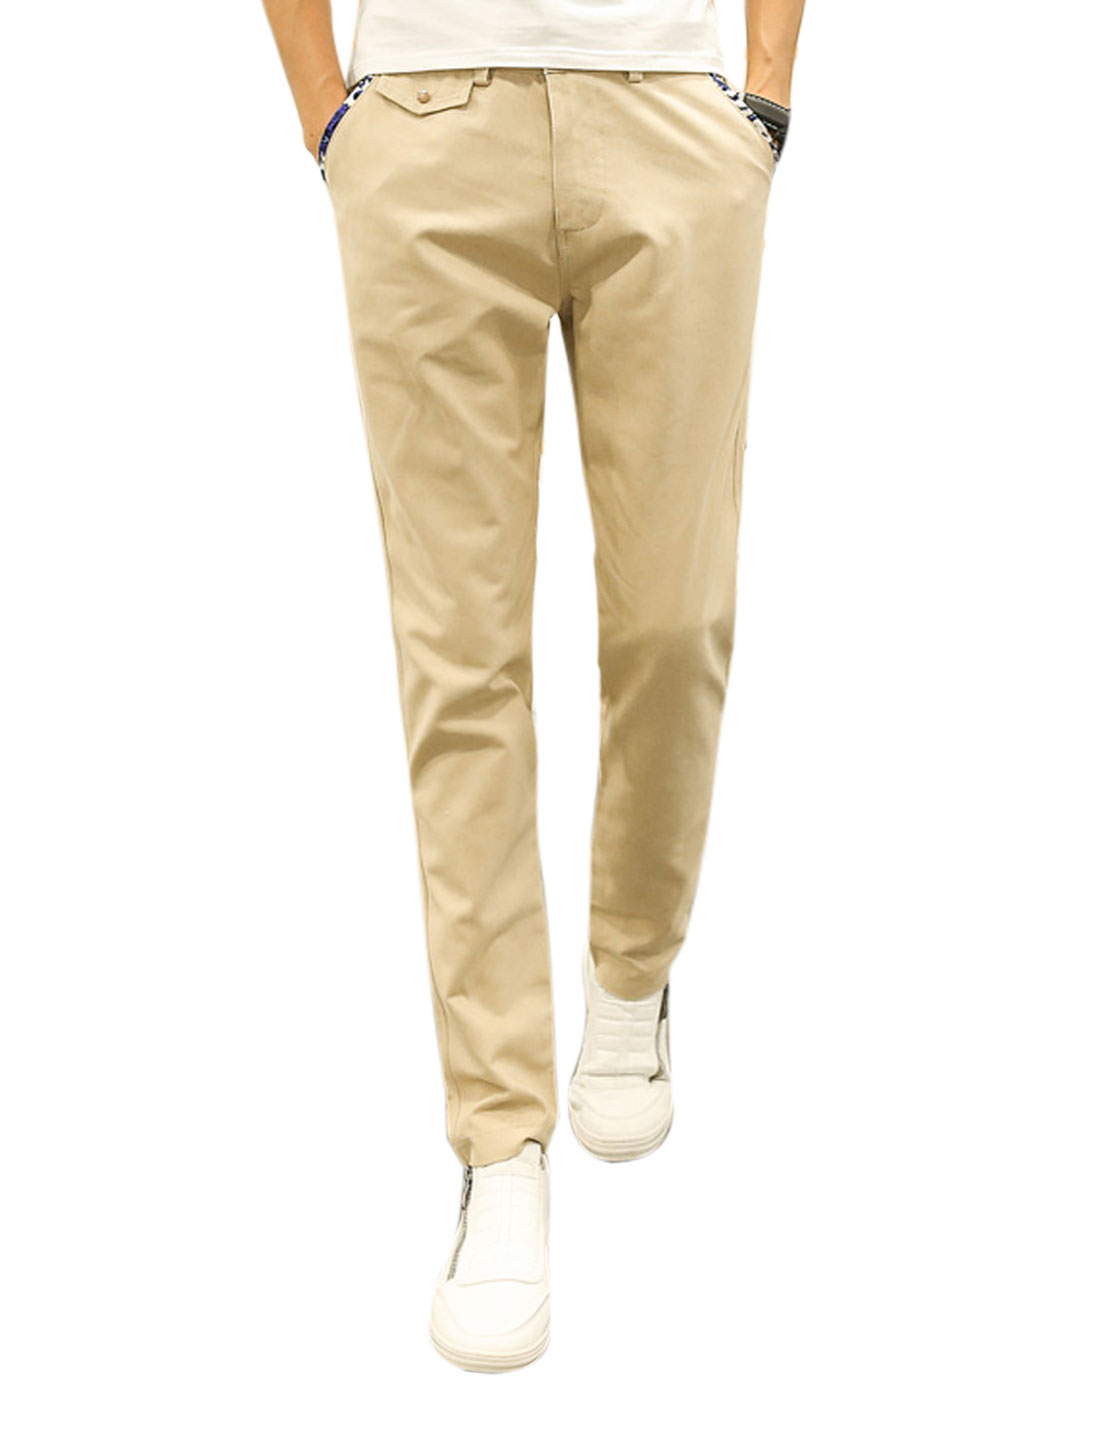 Men Button Closure Zip Fly Tapered Four Pockets Casual Trousers Beige W30